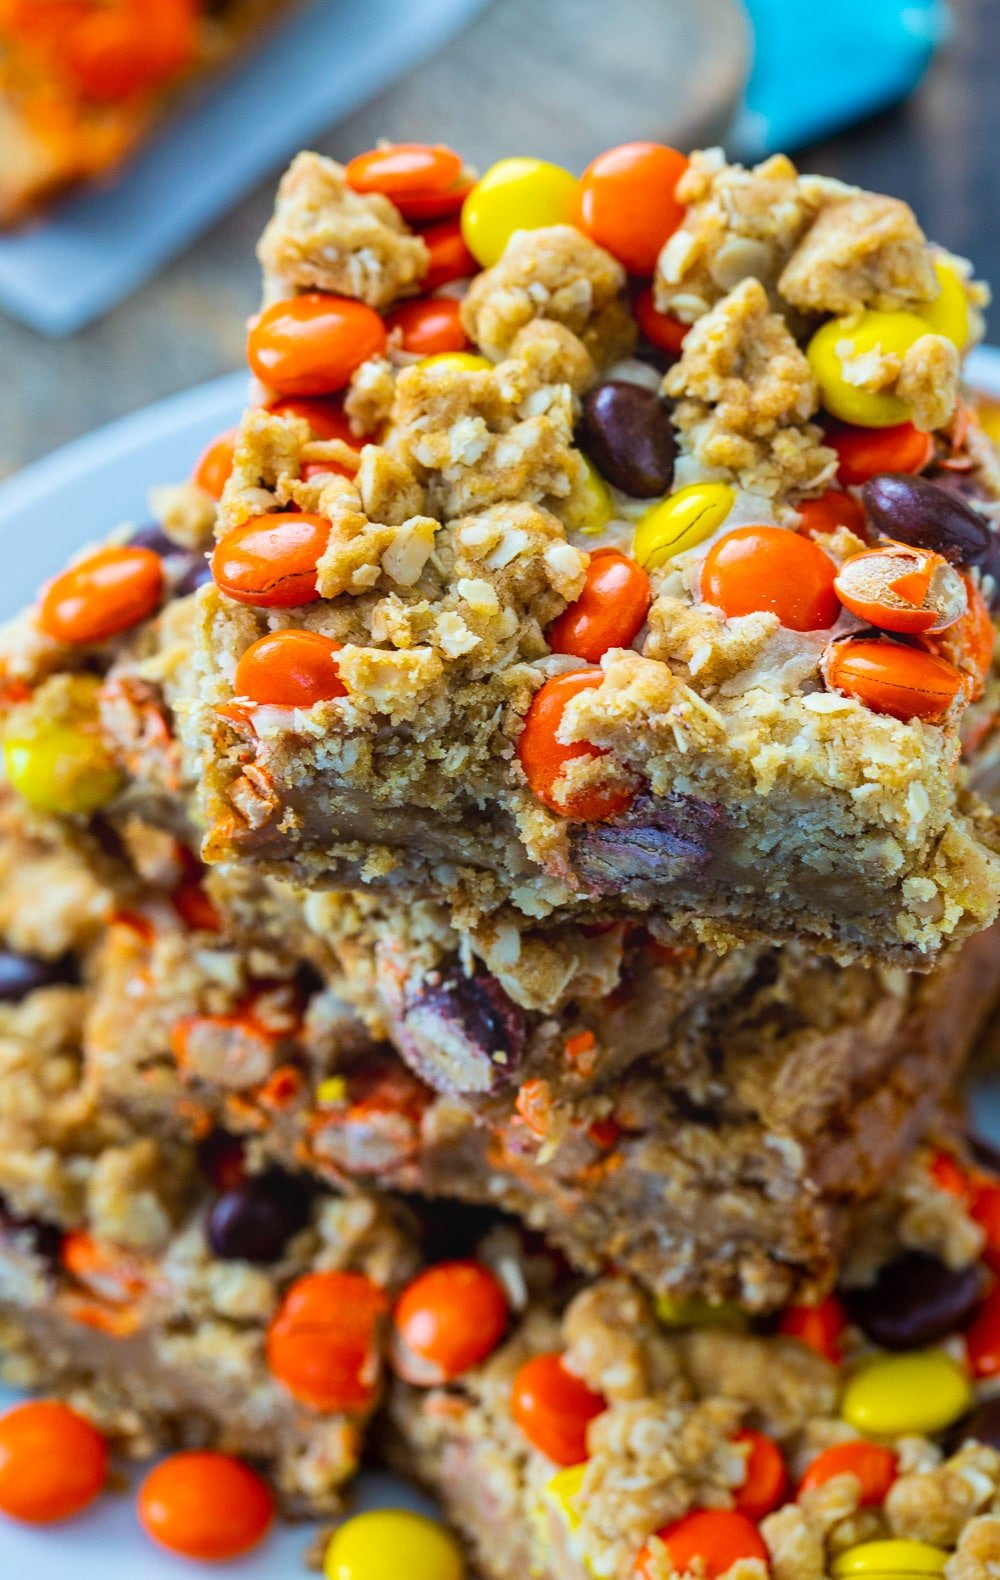 Close-up of Reese's Pieces Peanut Butter Oatmeal Bars